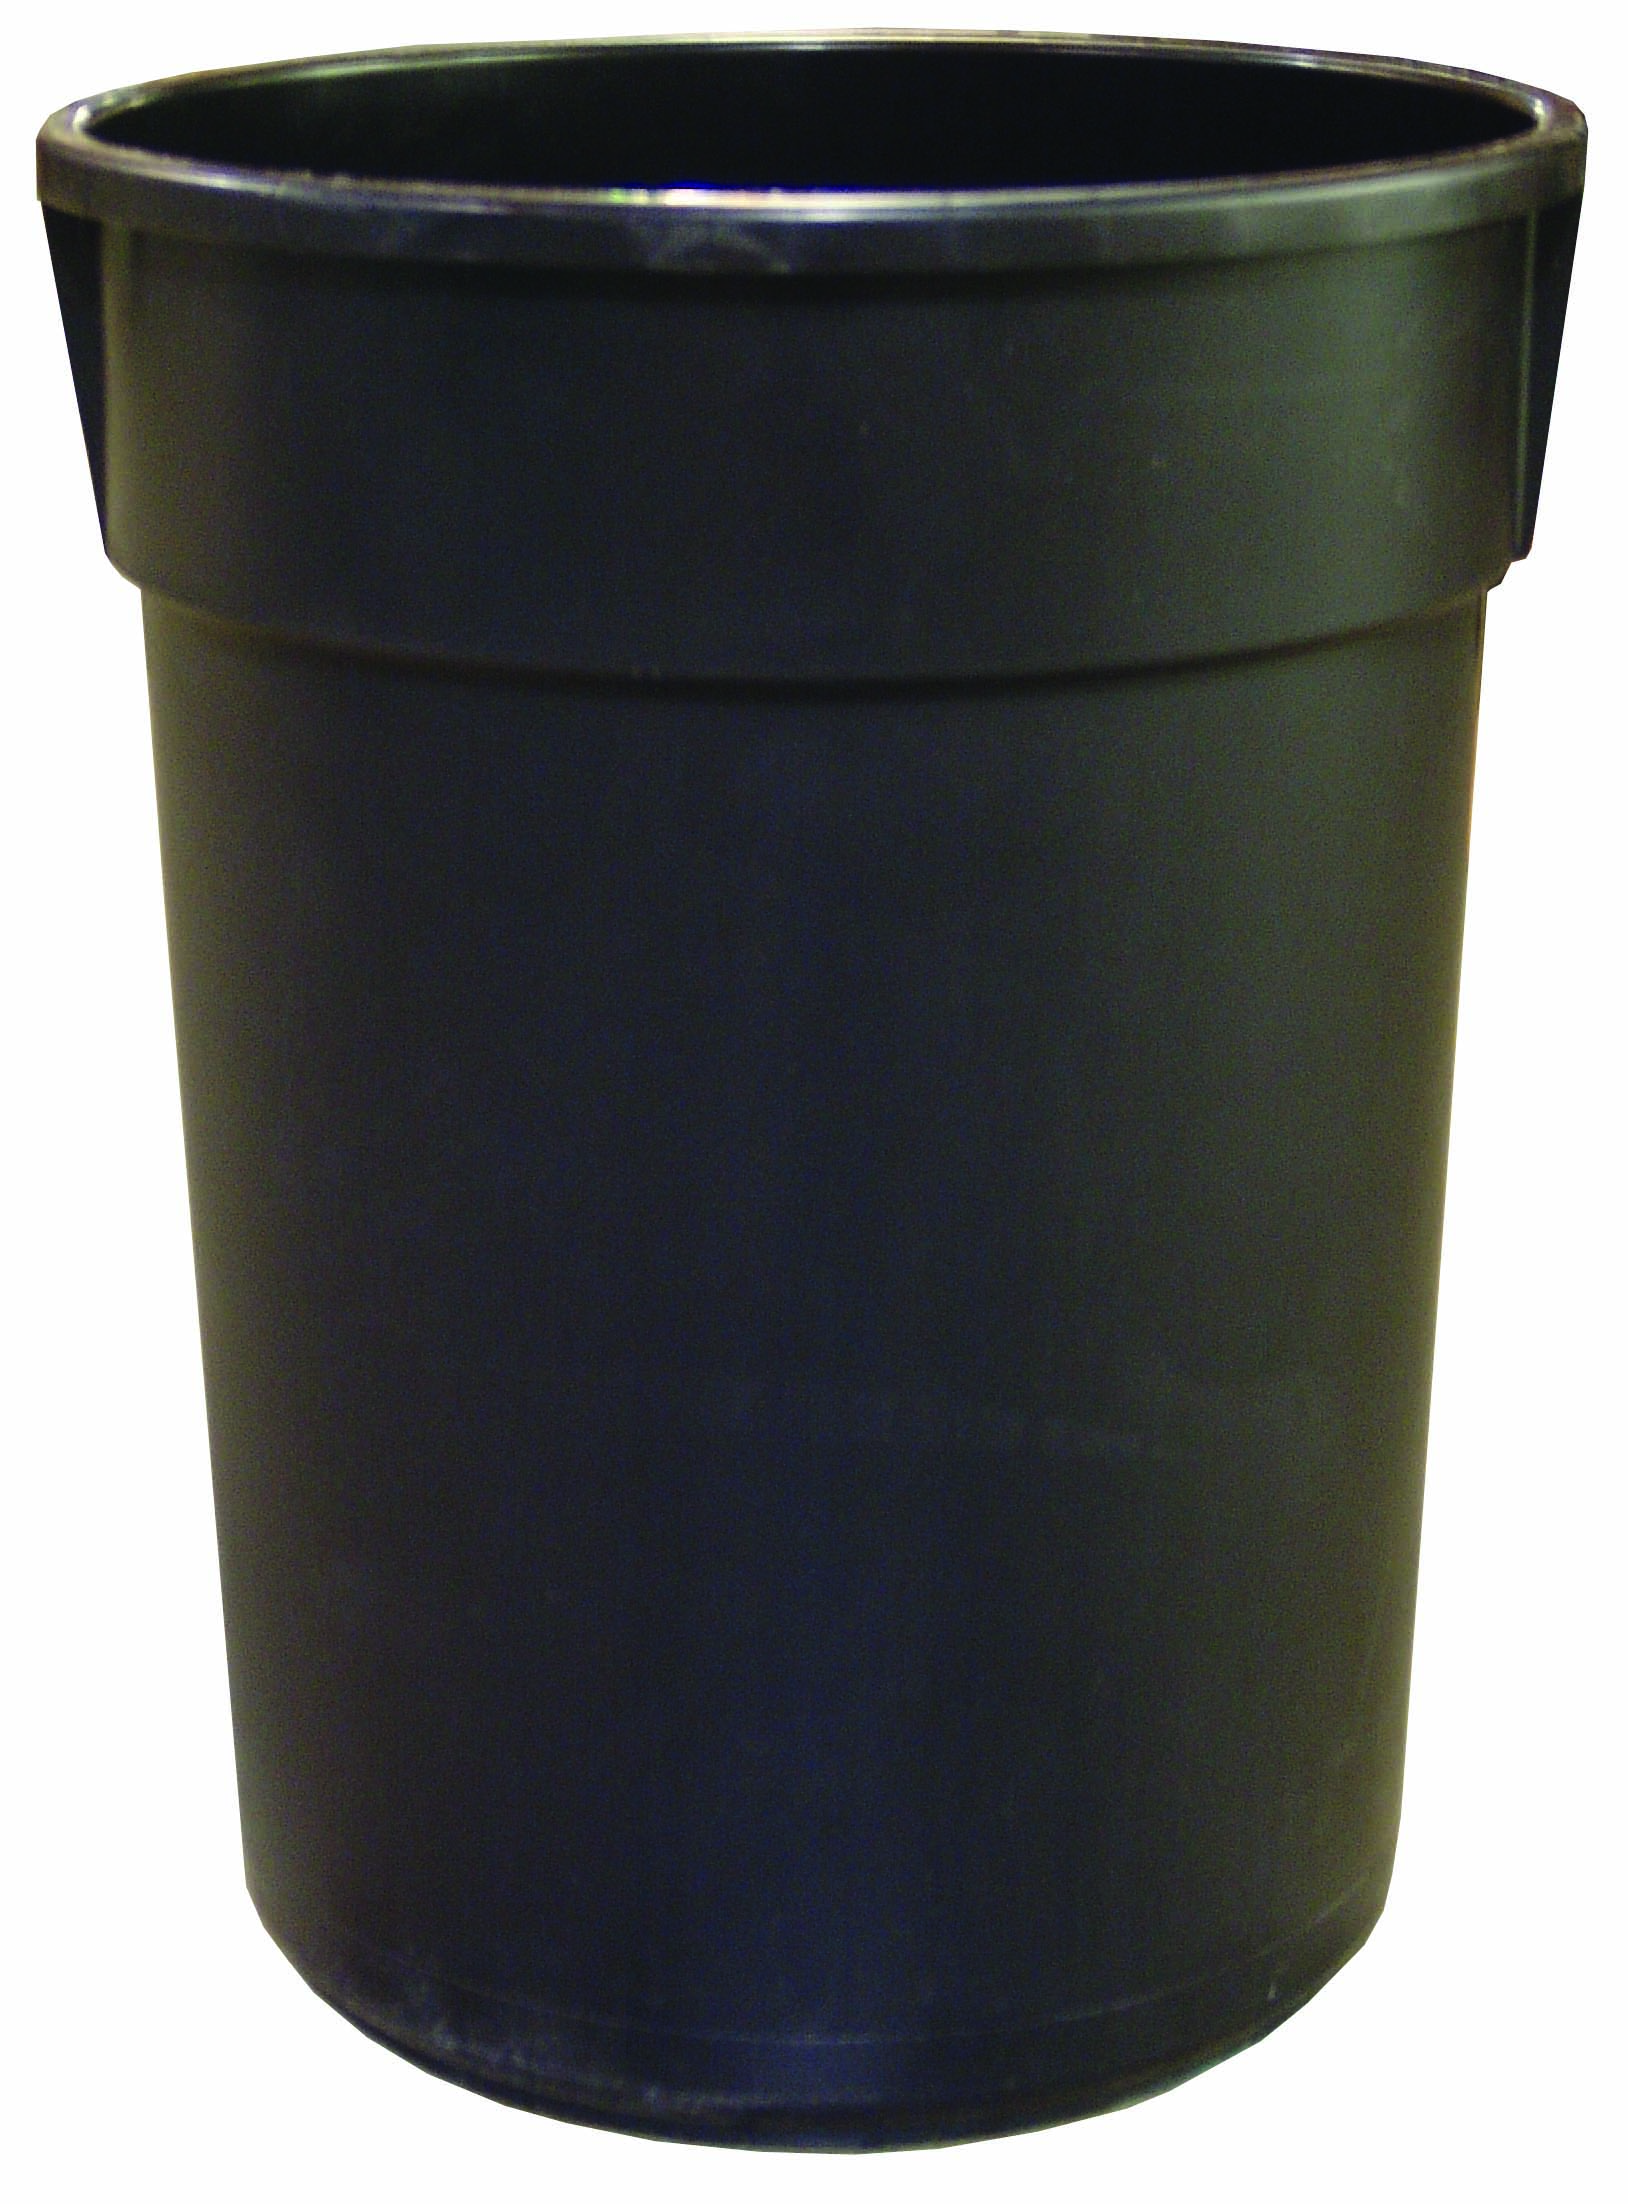 32 Gallon Receptacle Liner